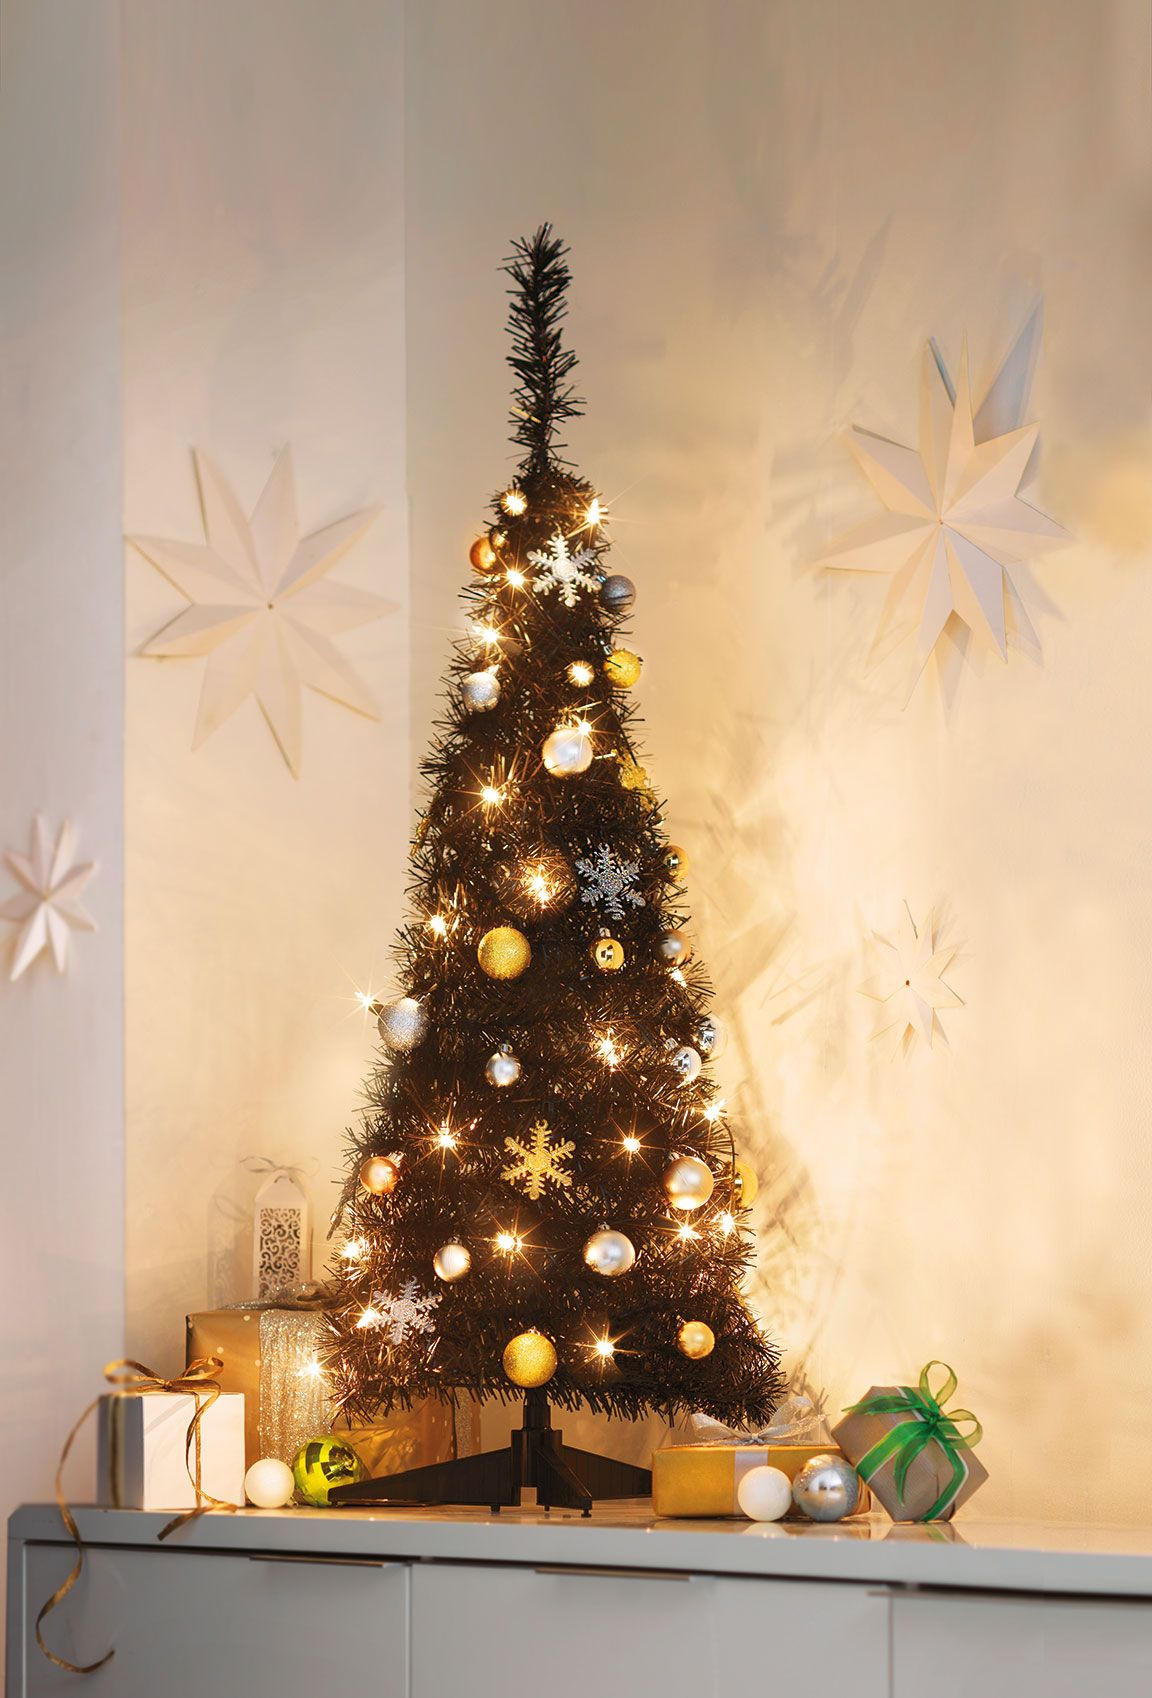 Mixing Black With Metallic Decorations This Pop Up Christmas Tree